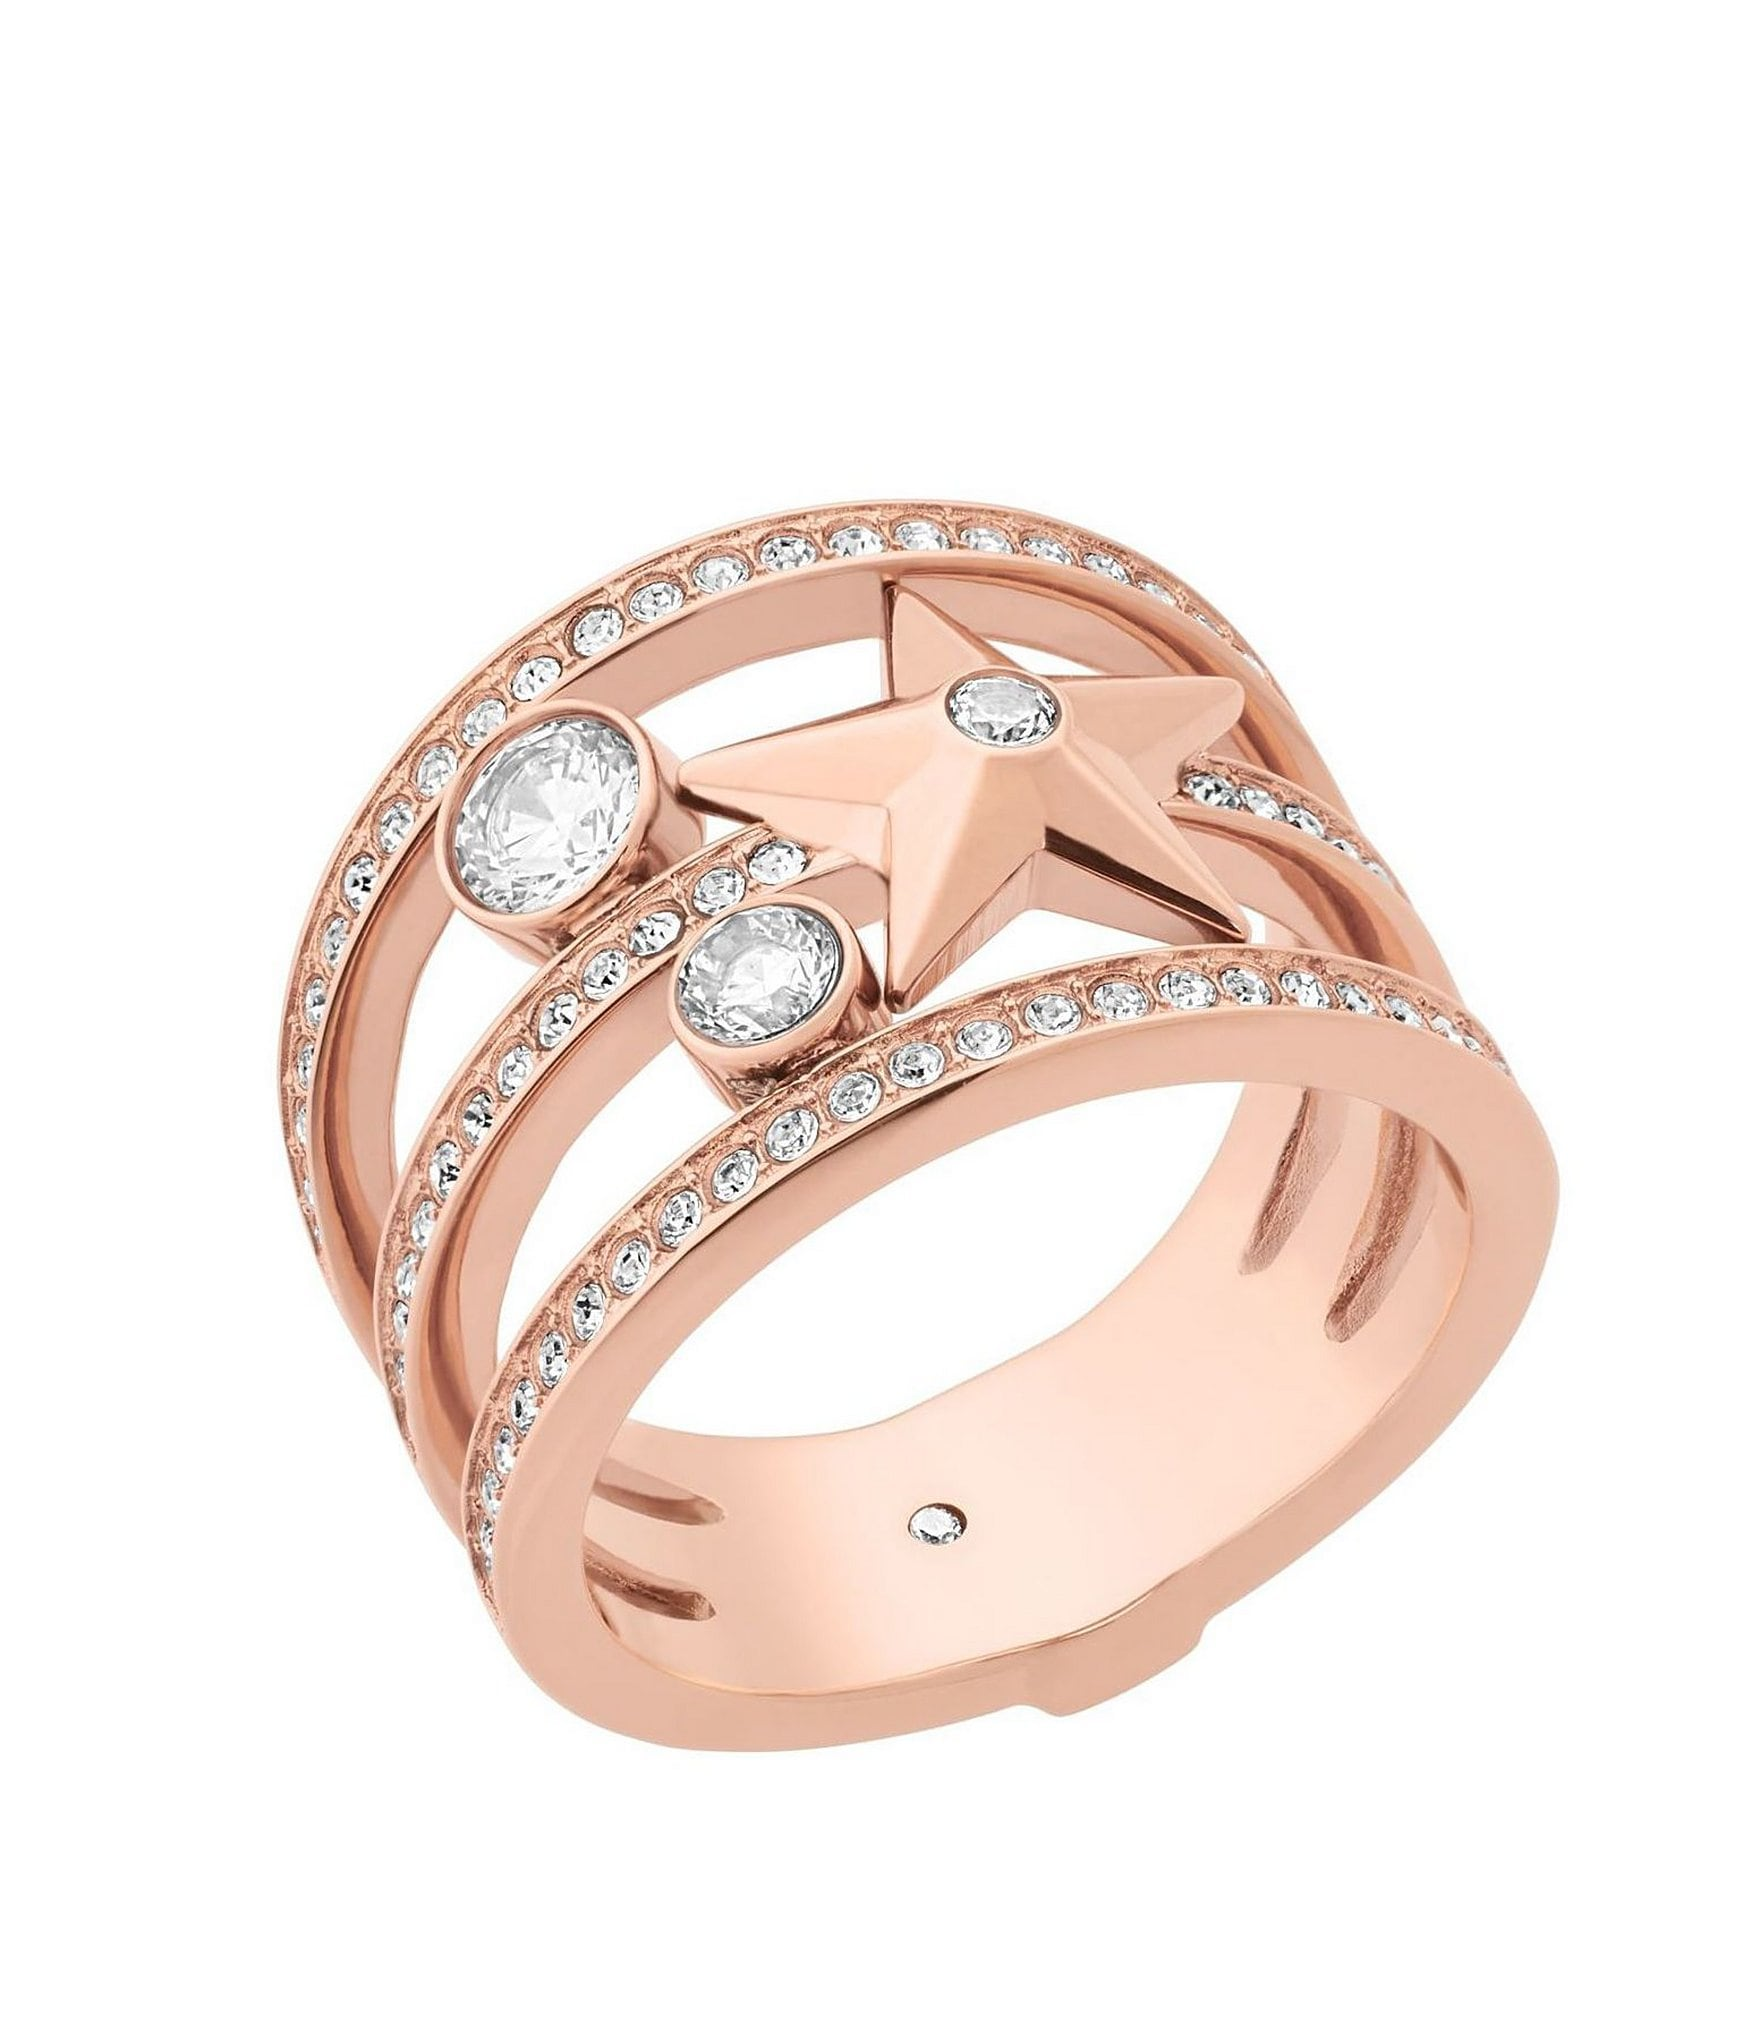 accessories jewelry rings dillards com